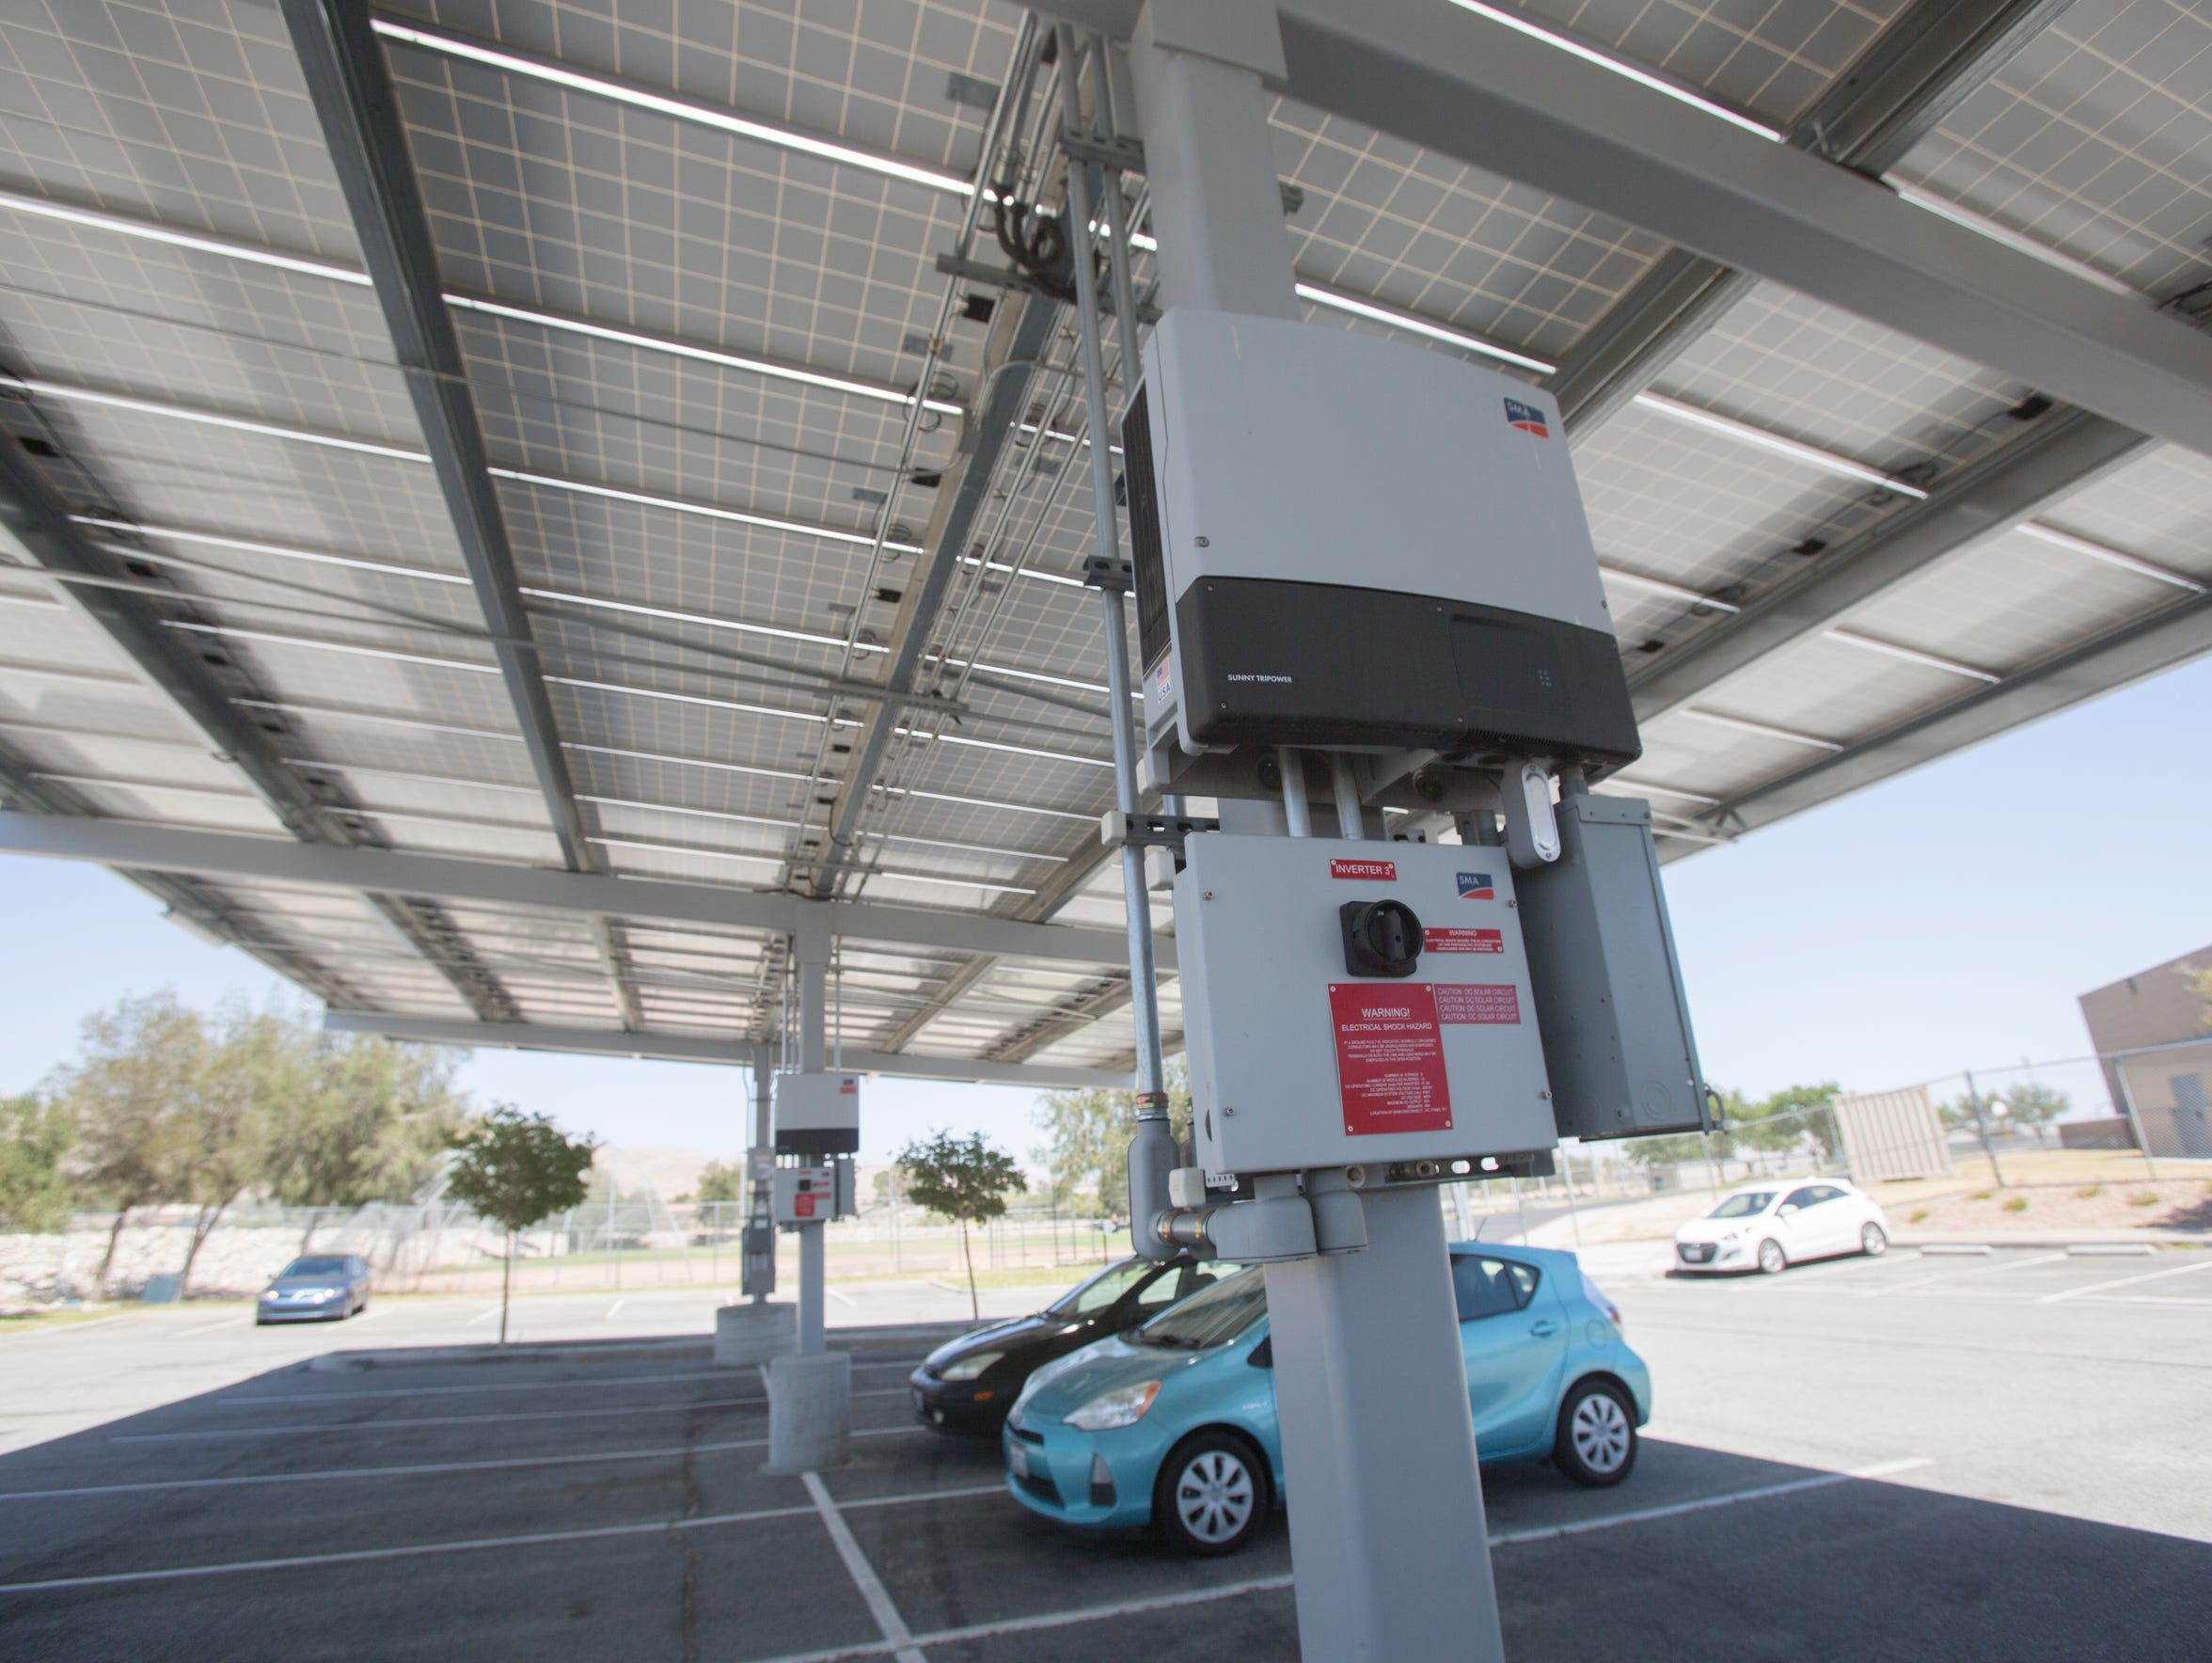 Solar panels in the north parking lot at Desert Hot